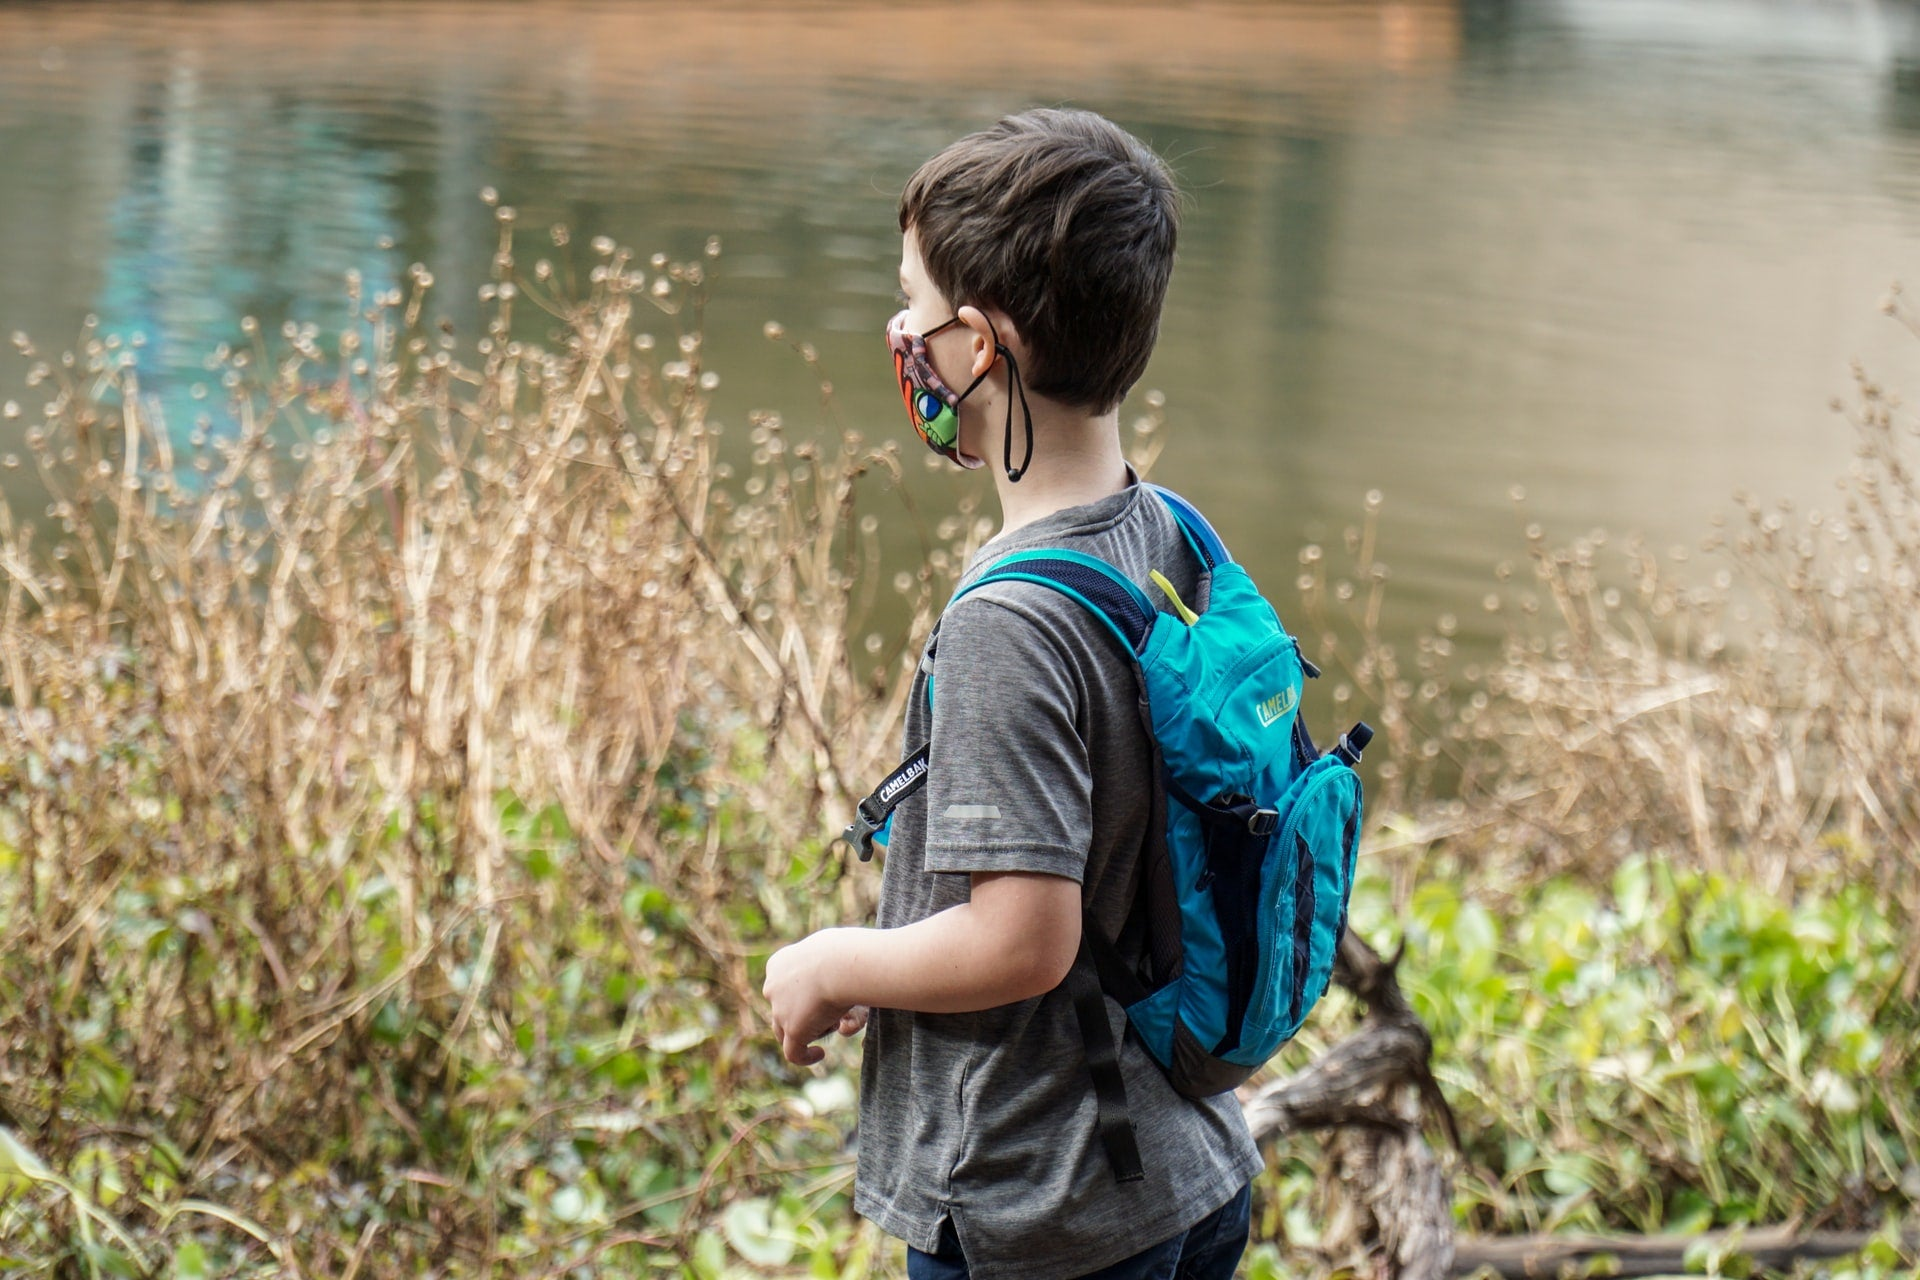 Kid with mask and backpack next to a pond